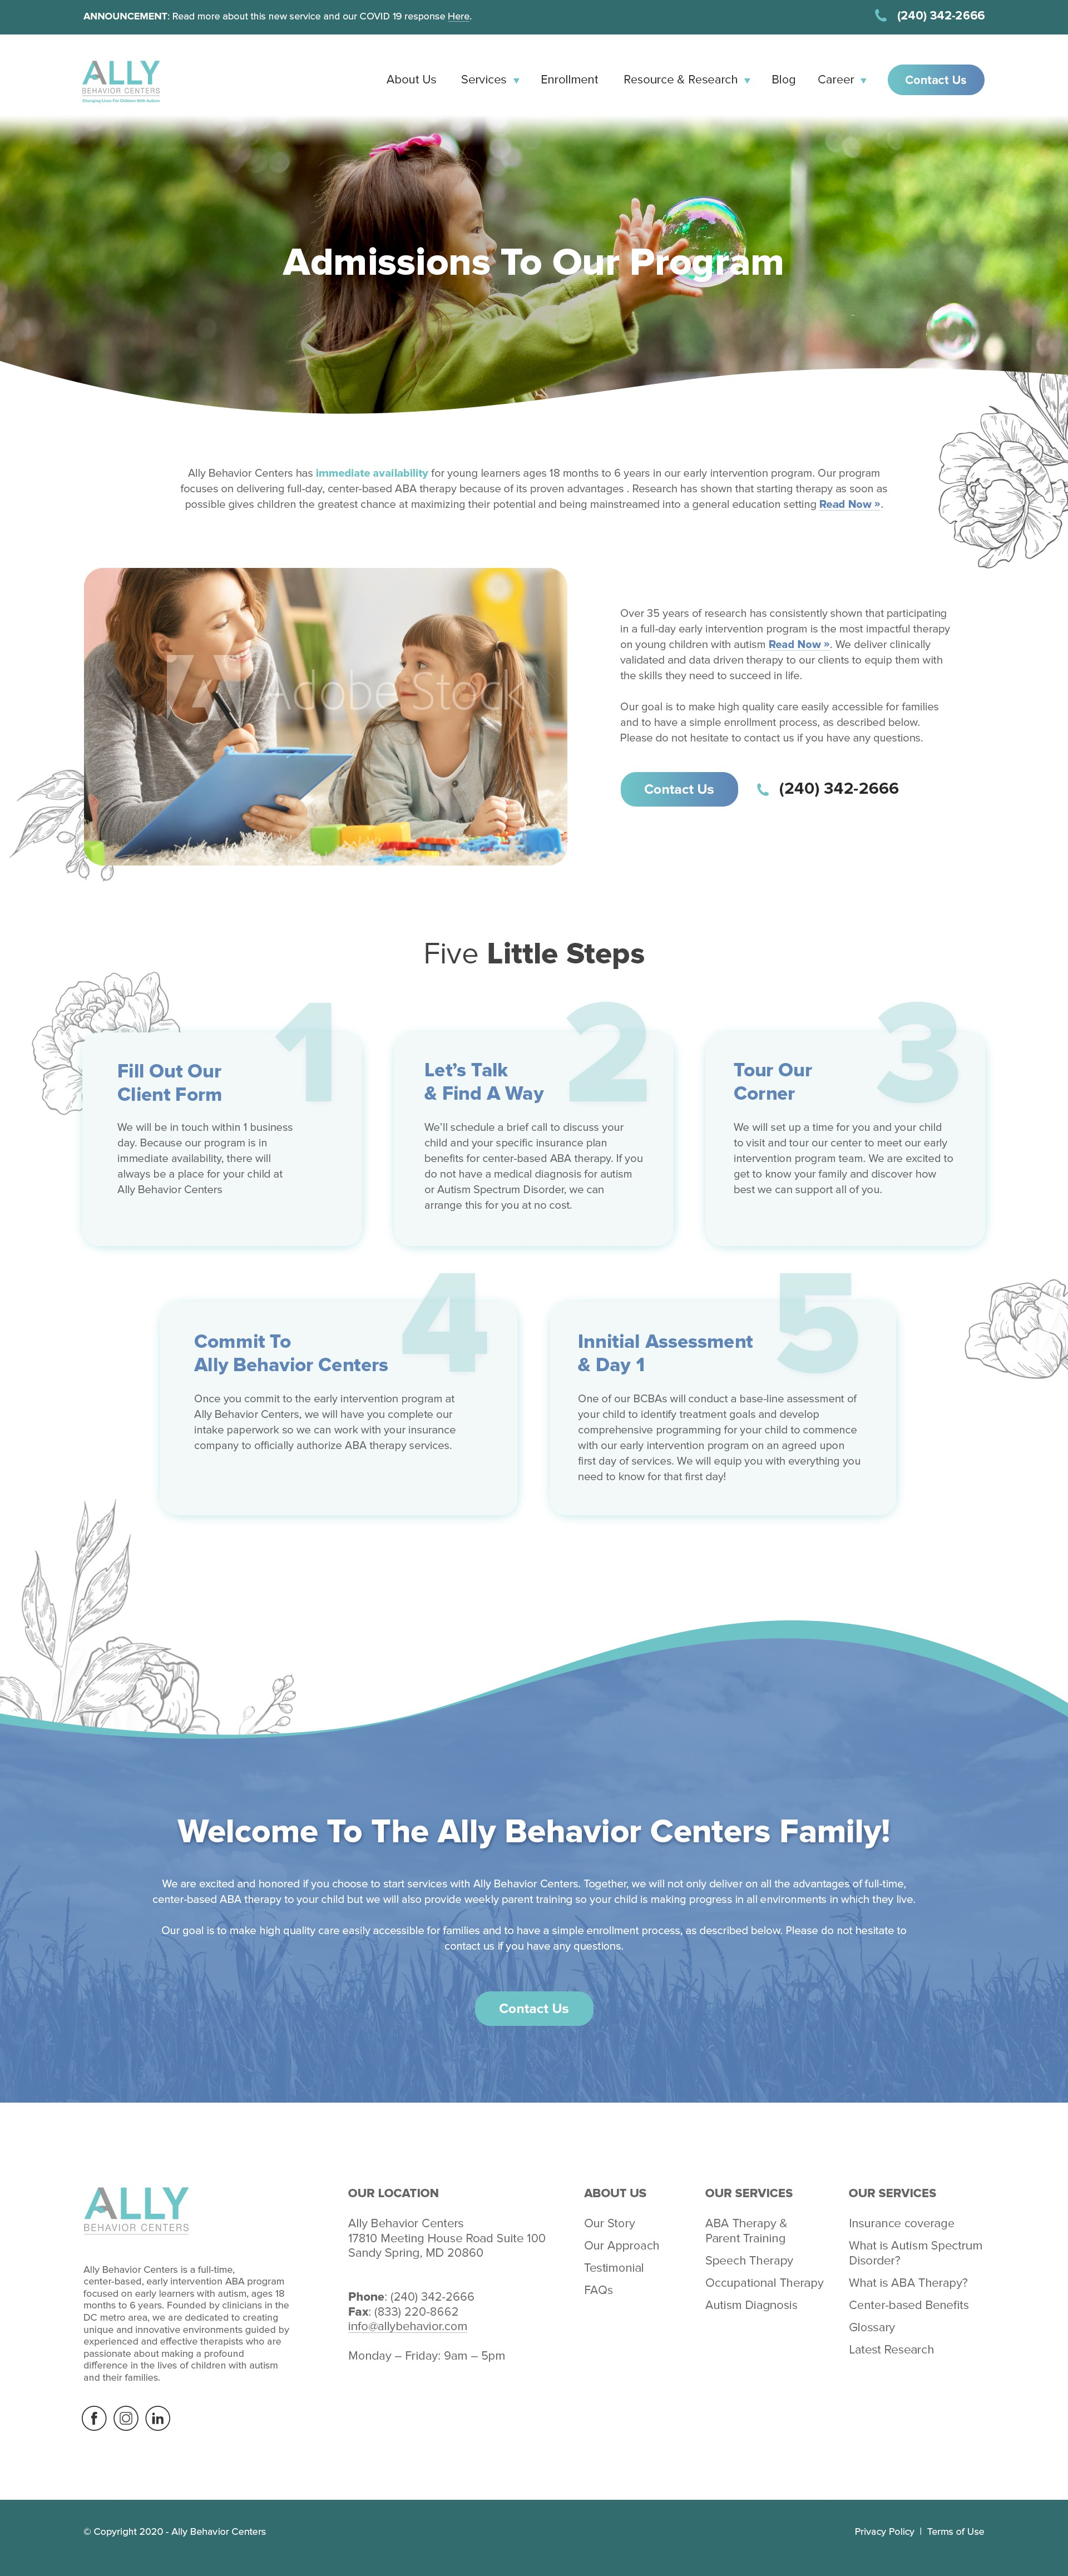 We need a professional and clean web design for our autism therapy company